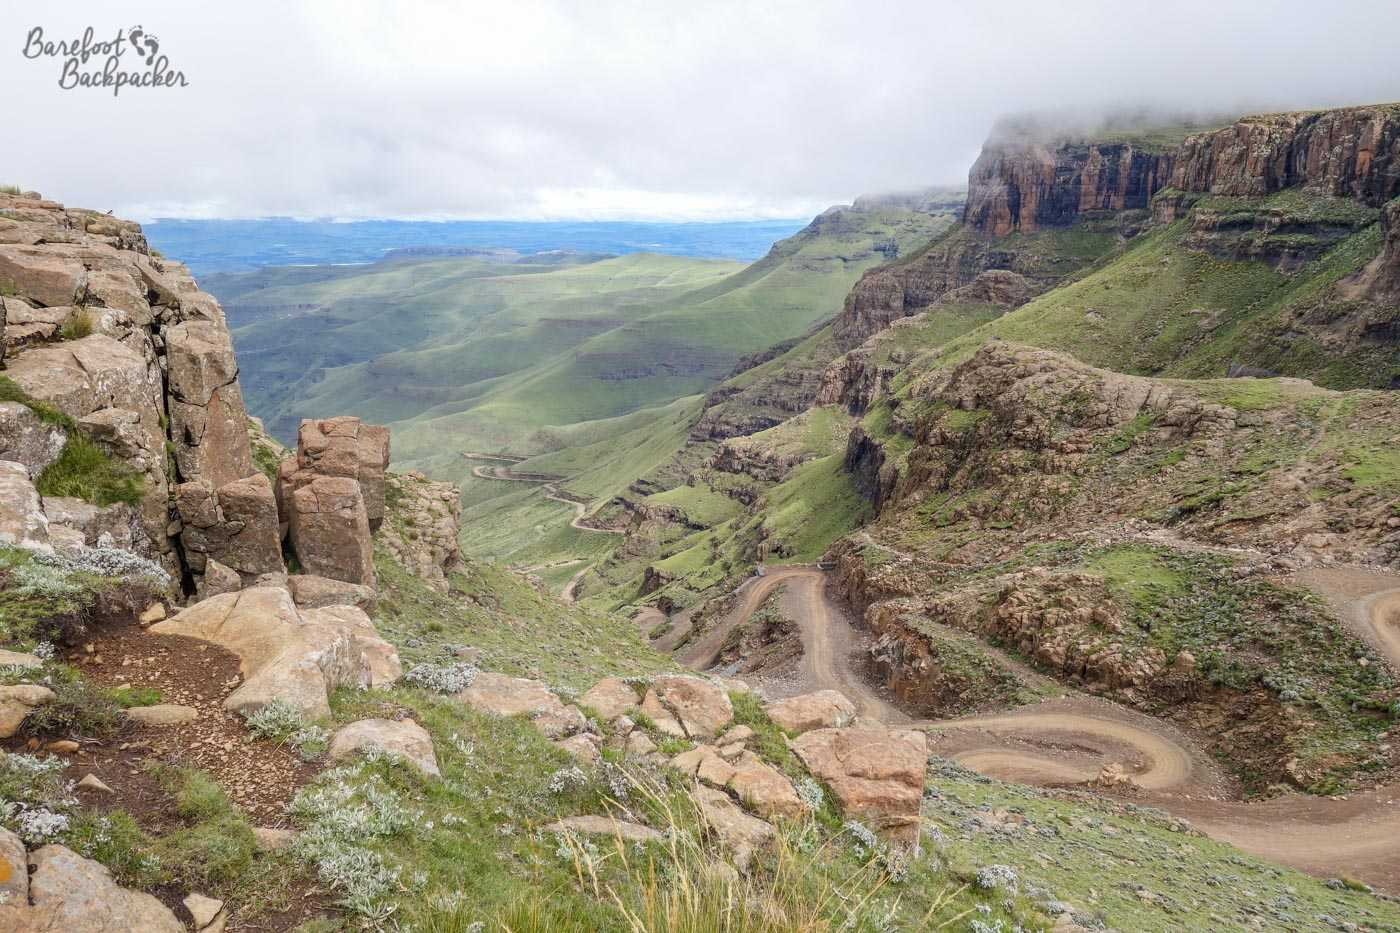 Looking out from the Sani Pass Lodge down the Sani Pass itself – the cloud has cleared and you can see the road winding downhill in its full glory.